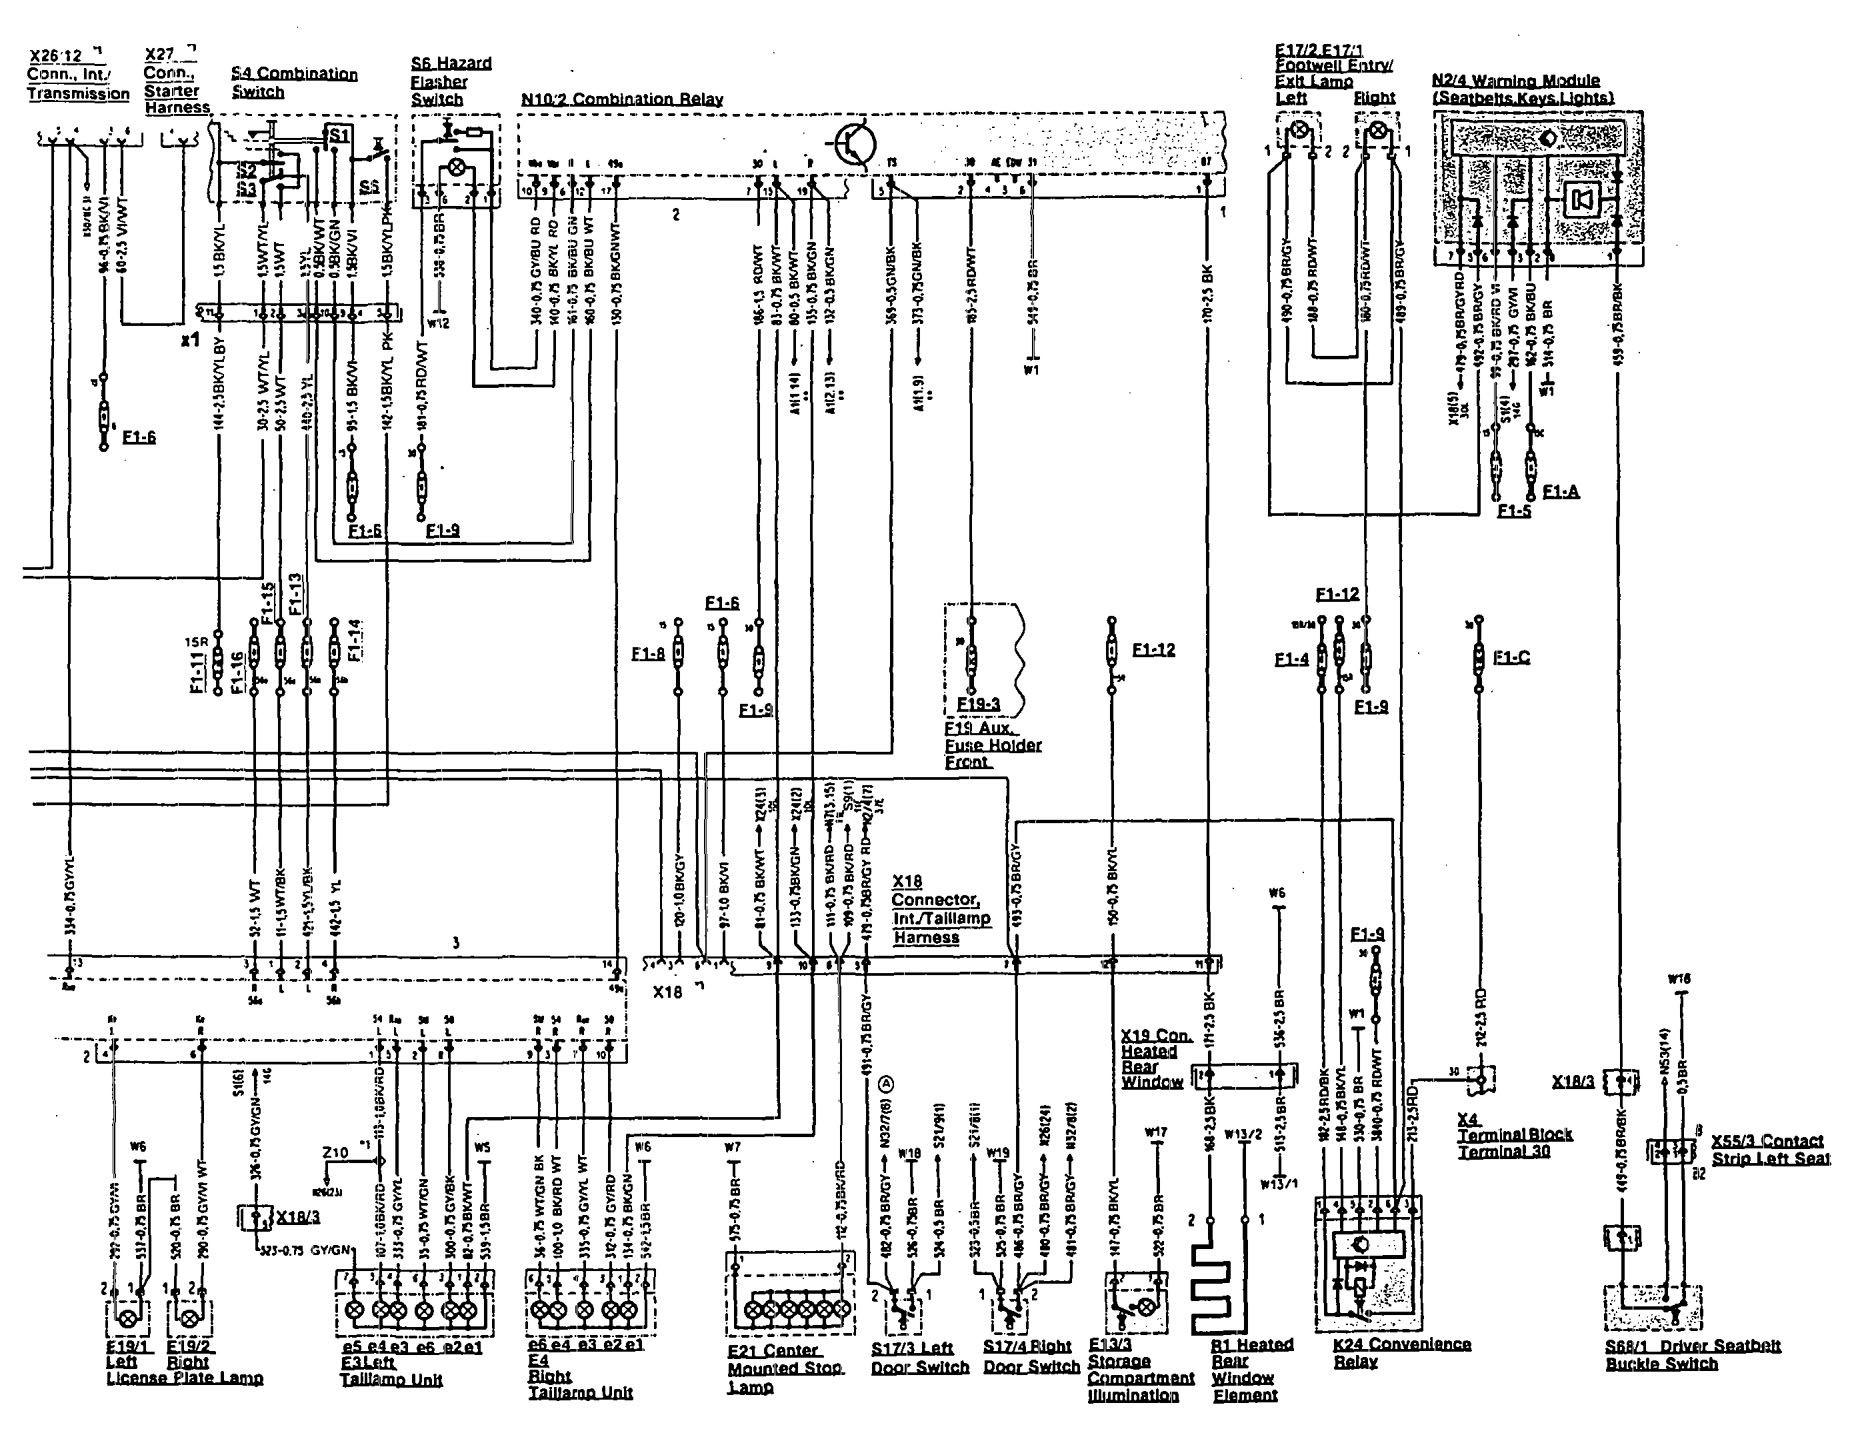 1993 mercedes 300e radio wiring diagram 1990 mercedes 500sl wiring diagram - wiring diagram and ... 1993 infiniti g20 radio wiring diagram